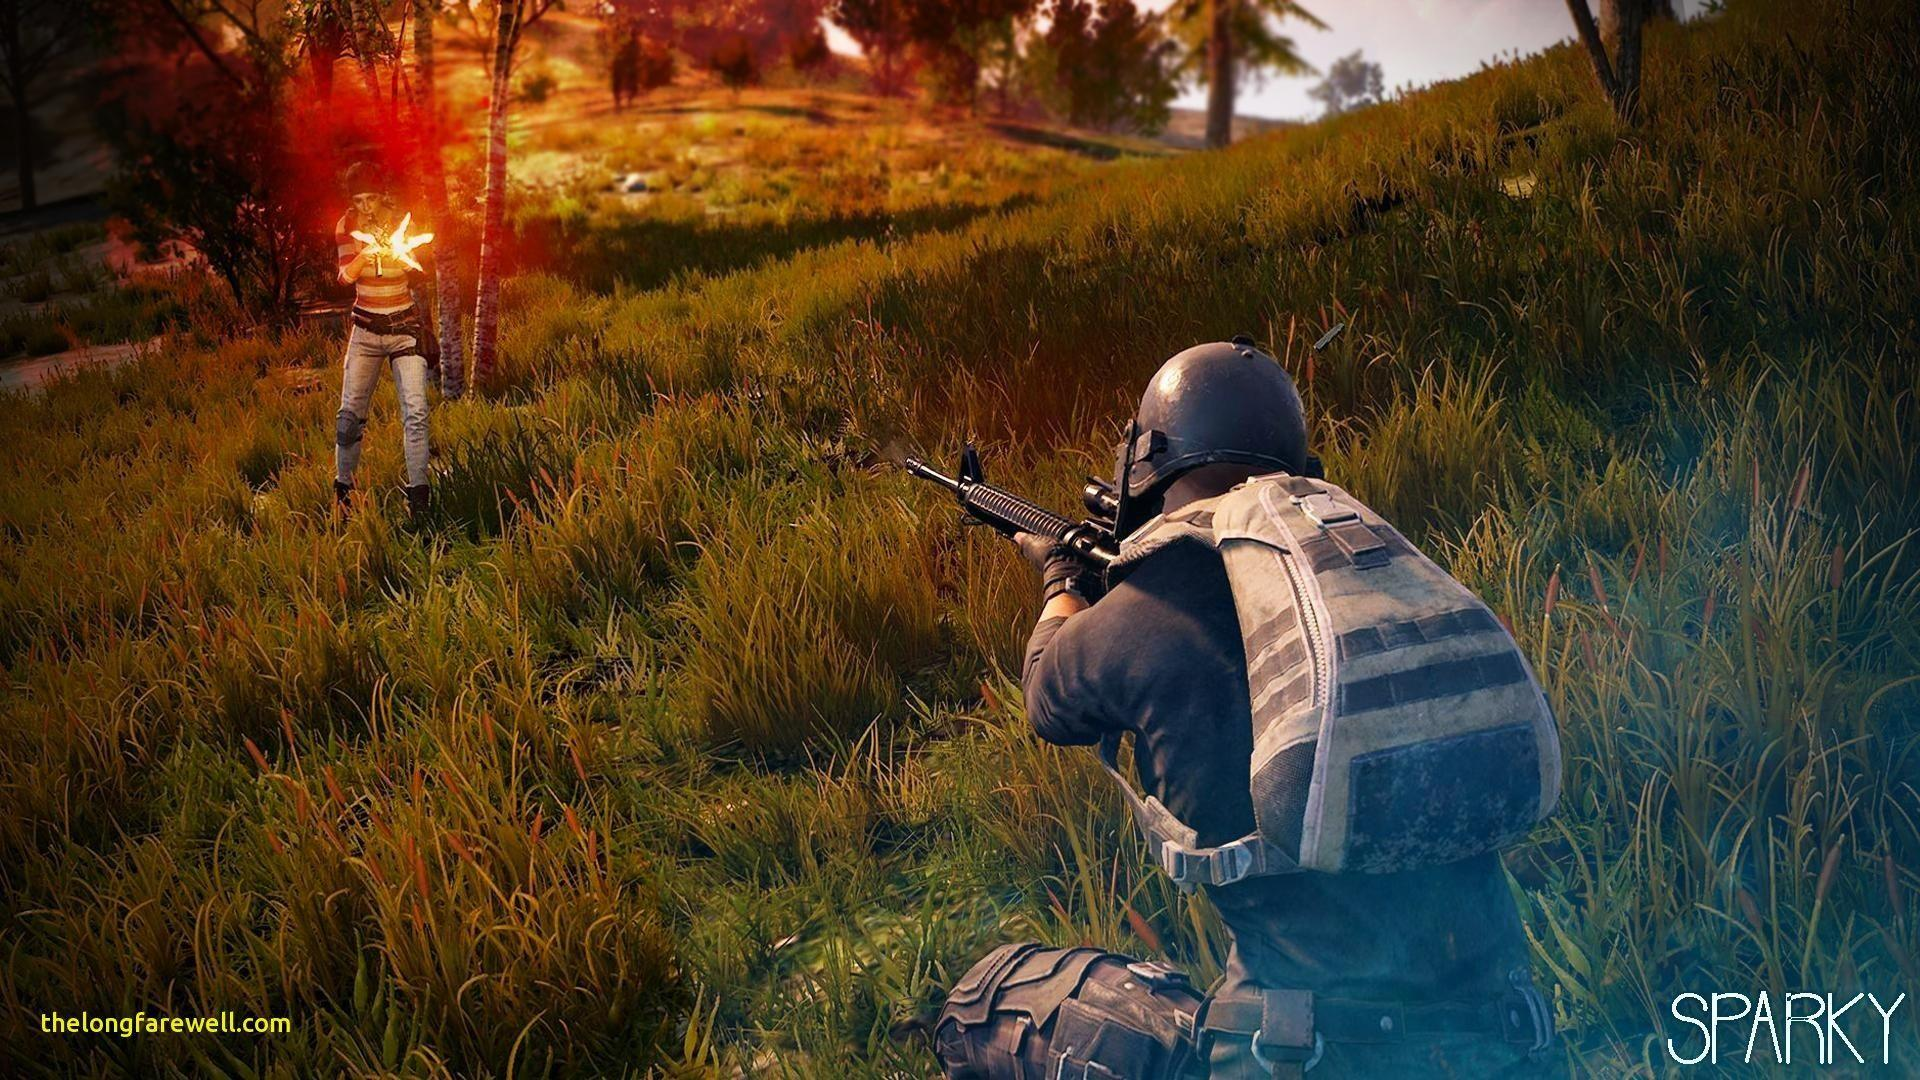 10 Best 4k Hd Gaming Wallpapers Full Hd 1920 1080 For Pc: PUBG 4K Wallpapers